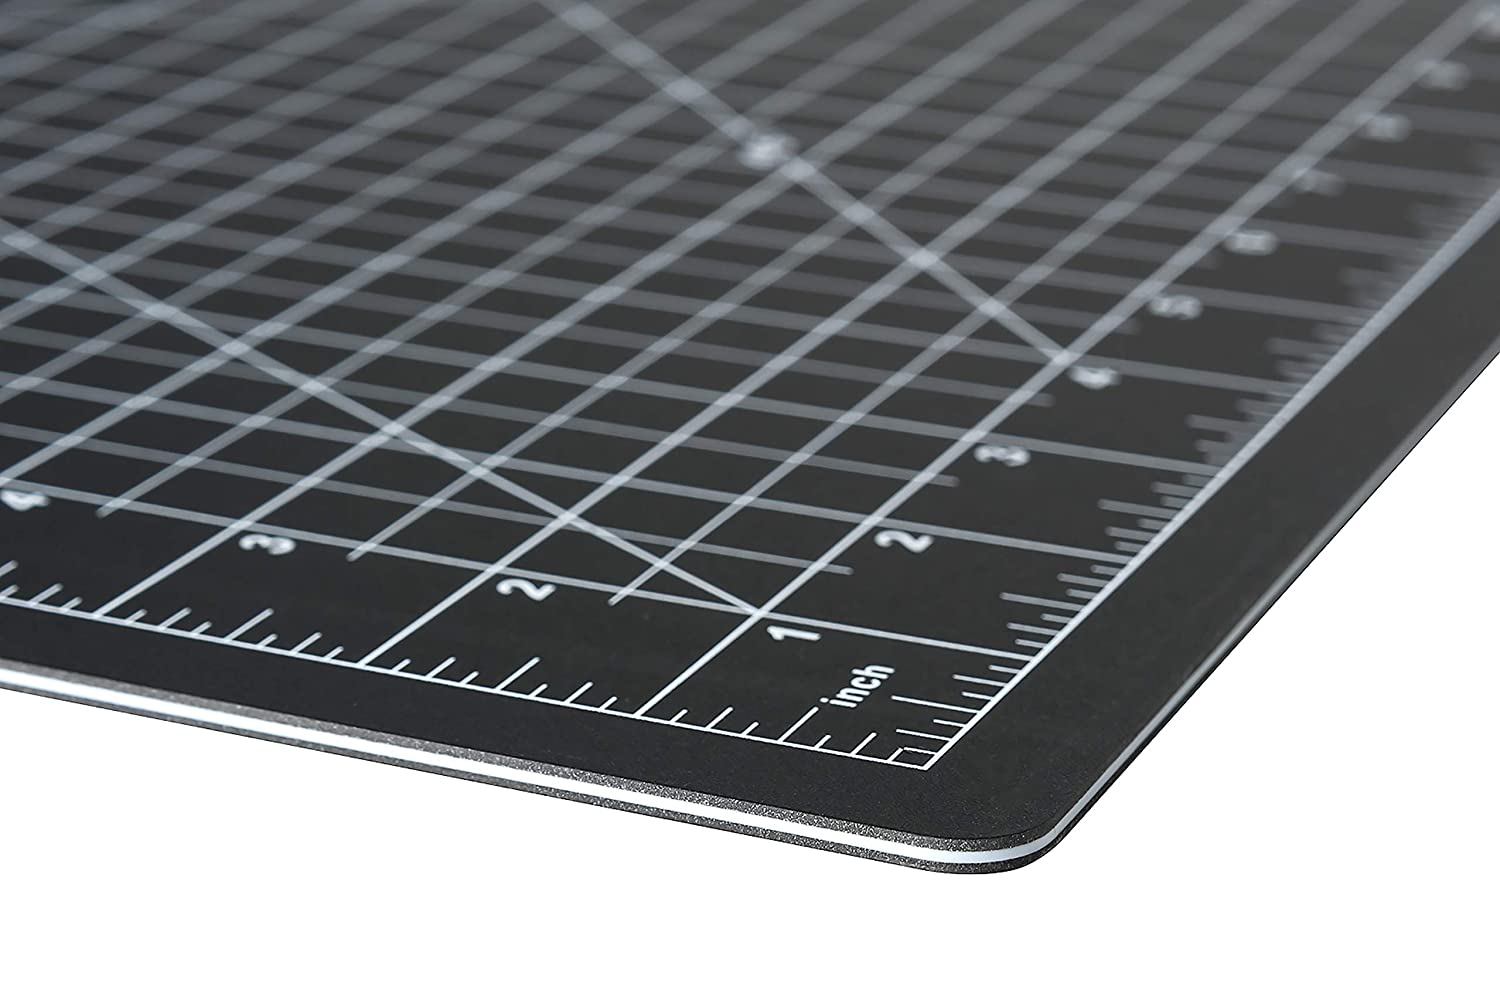 Sewing Black 24 x 36 1//2 Grid Lines and Crafts Dahle 10673 Vantage Self-Healing Cutting Mat Cutting 5 layer PVC Construction Perfect for Cropping Photos Self Healing for Maximum Durability